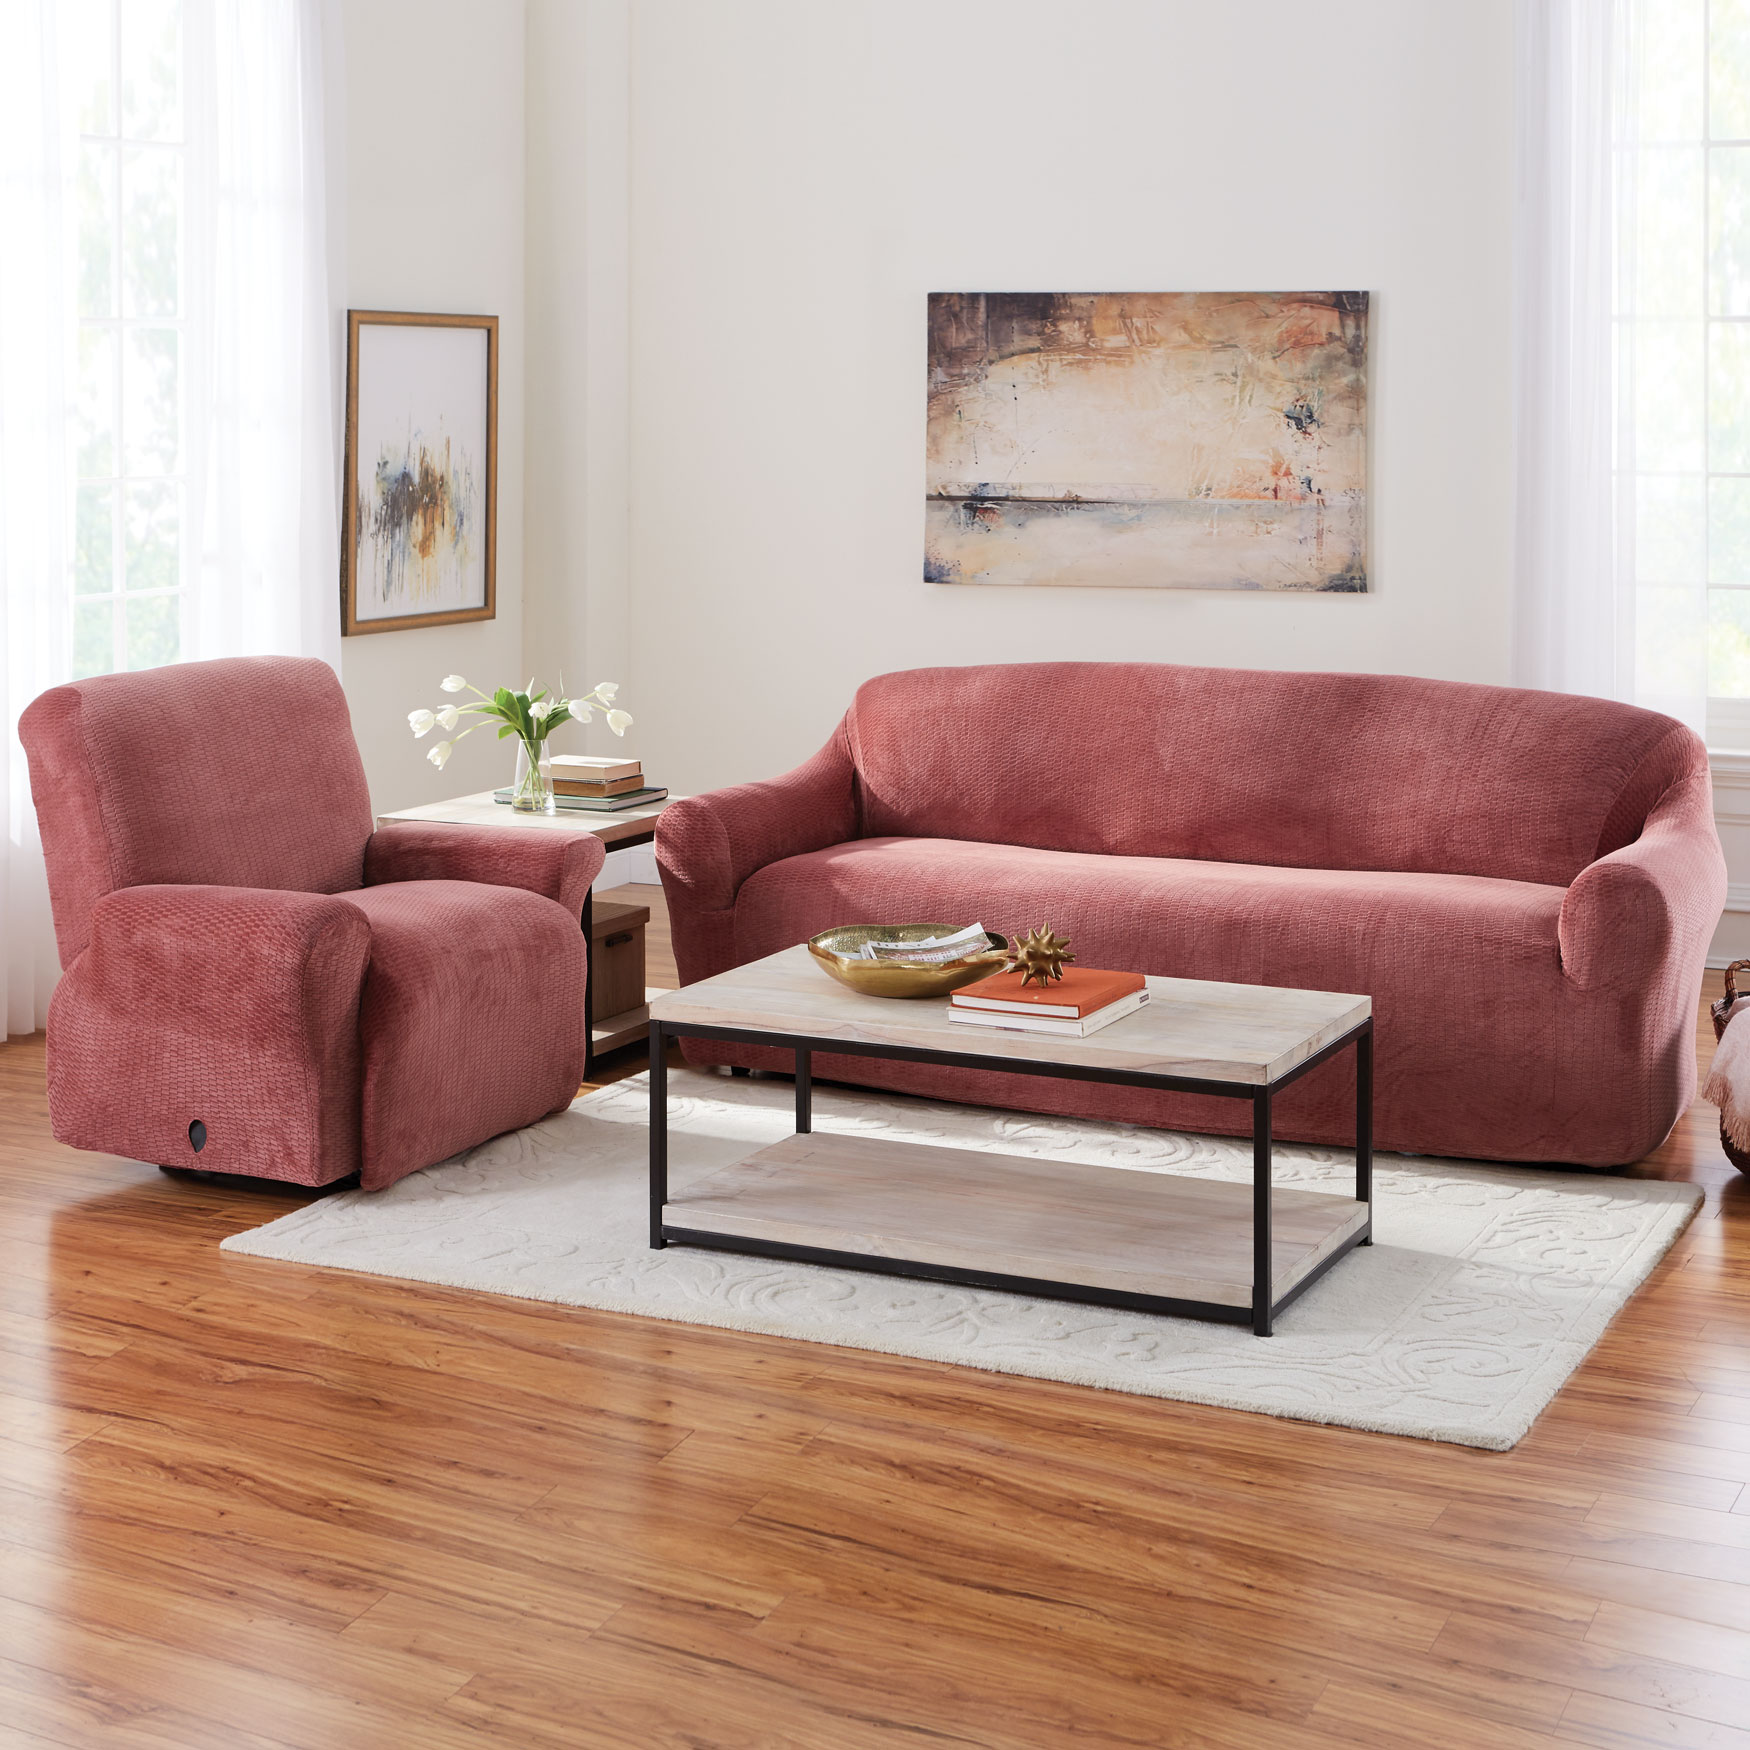 BH Studio Brighton Stretch Sofa Slipcover,